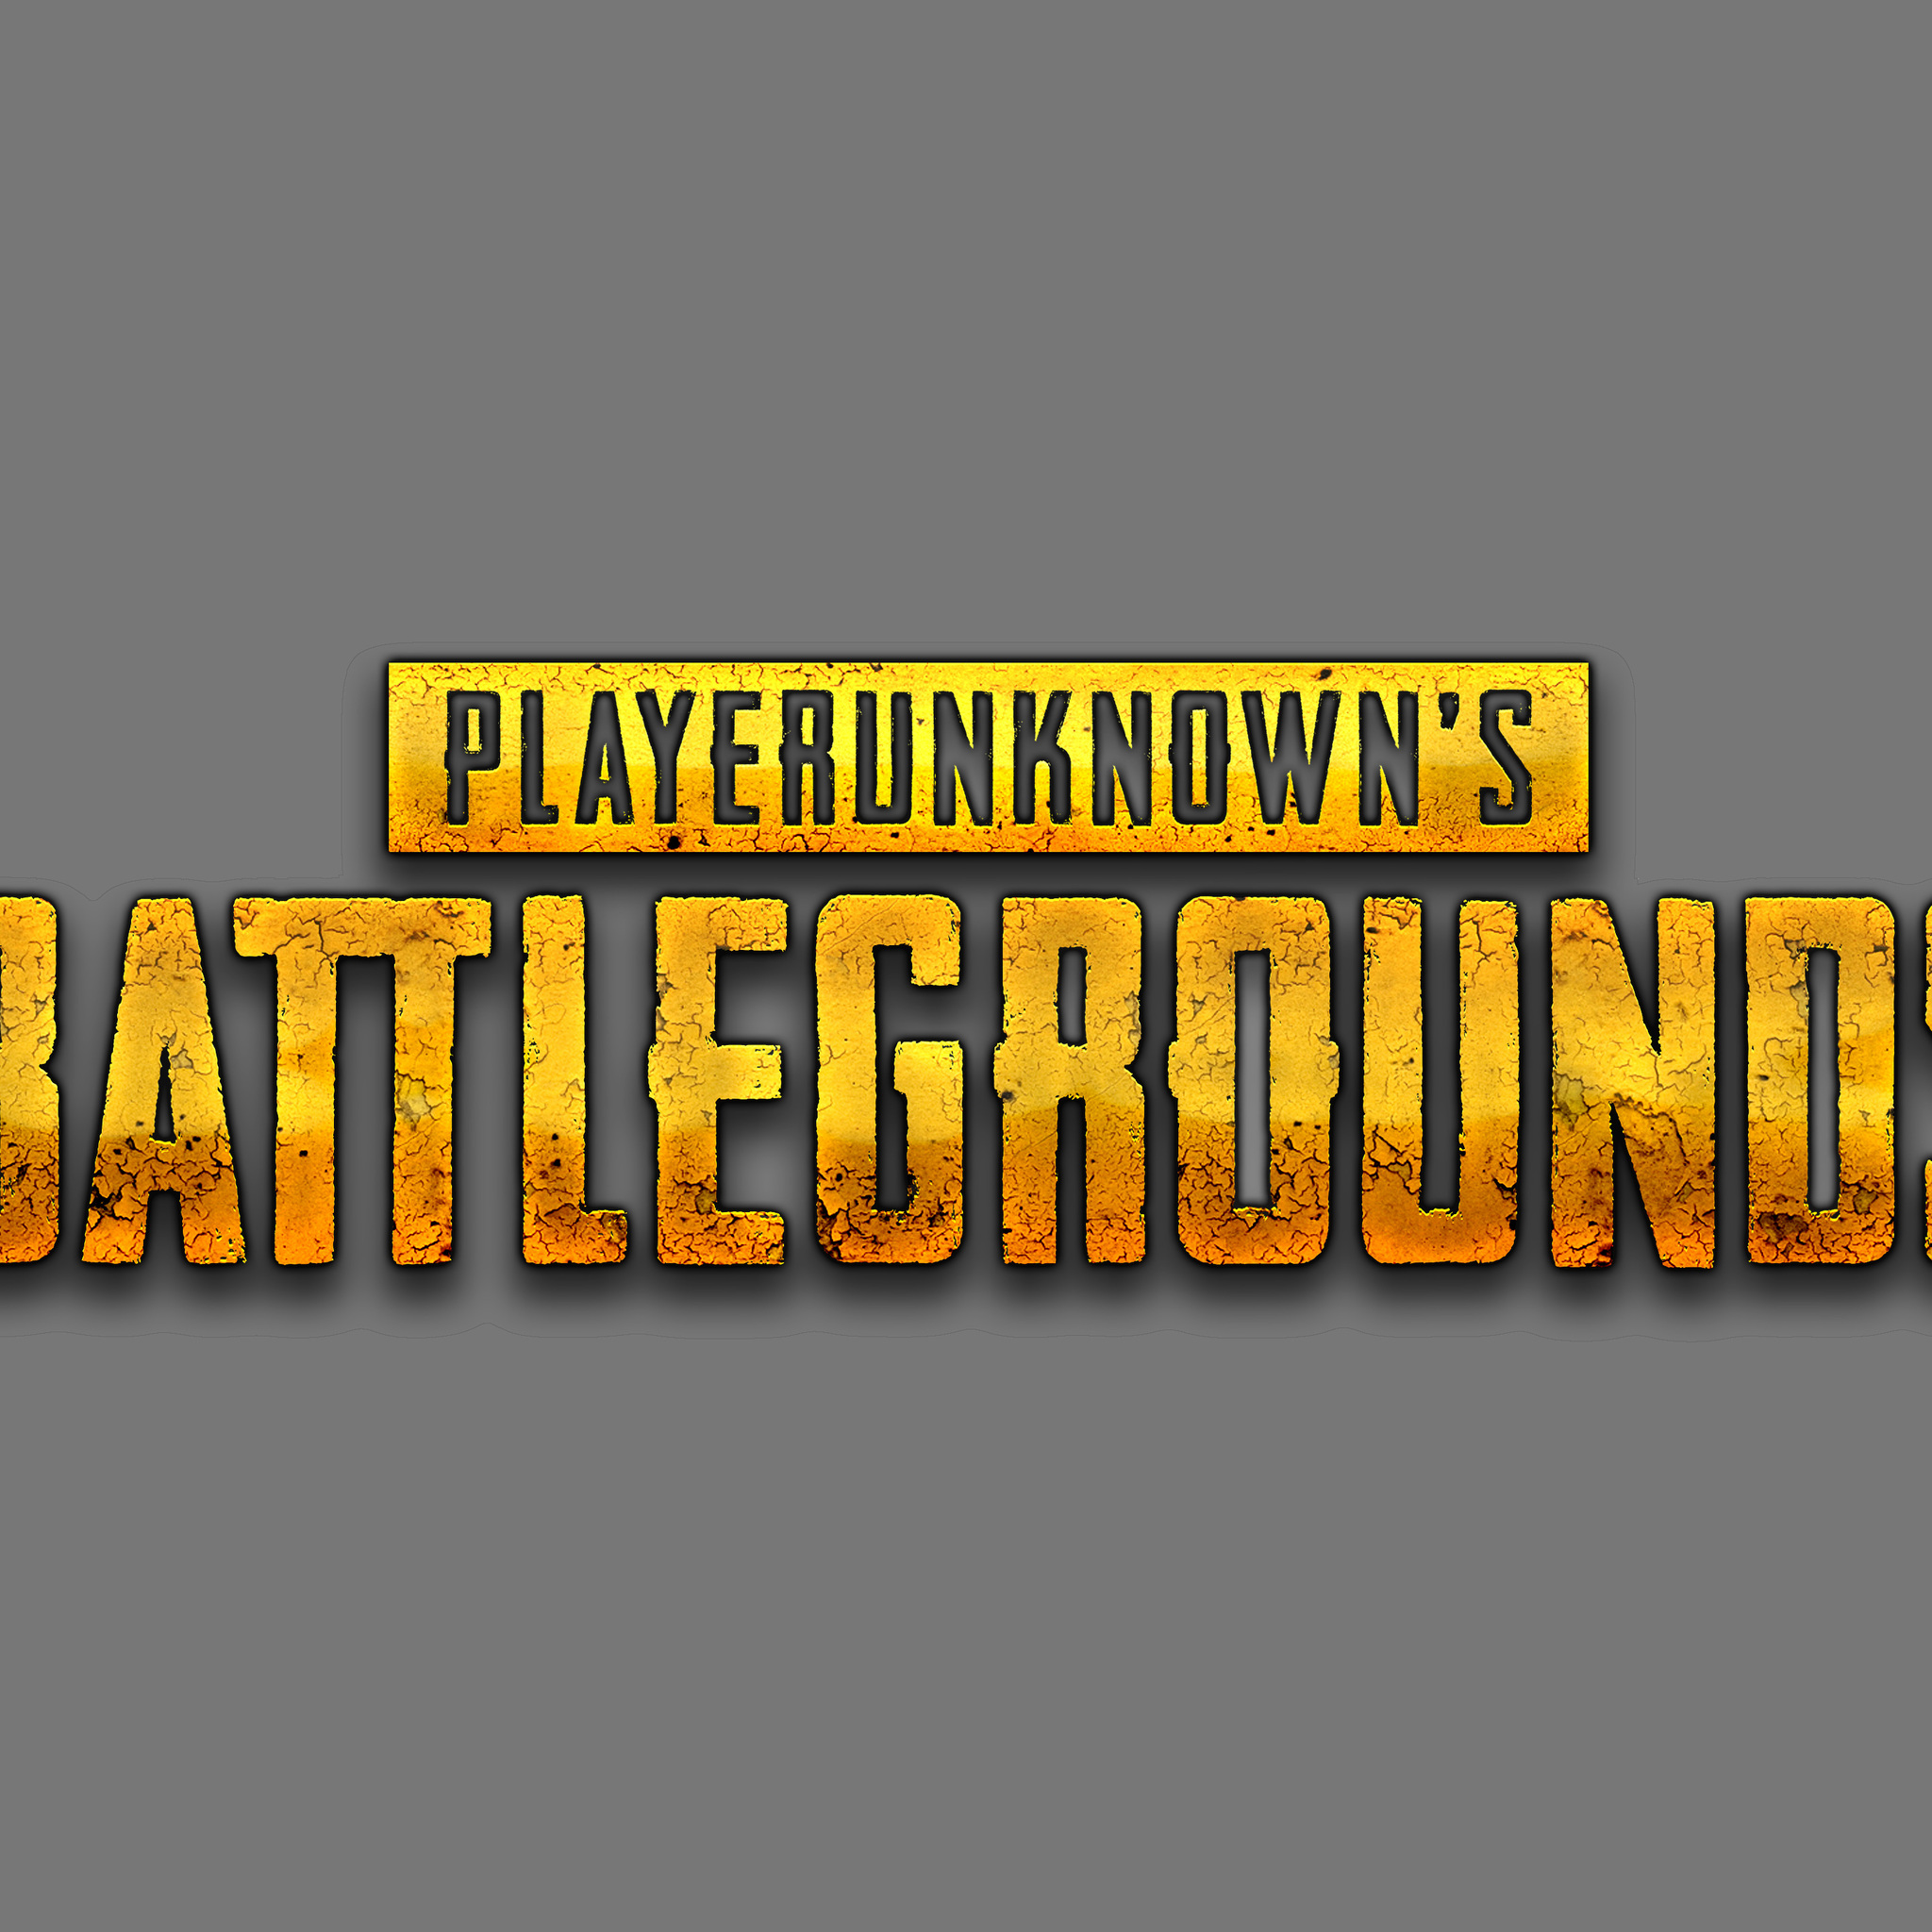 playerunknowns-battlegrounds-logo-5k-k1.jpg